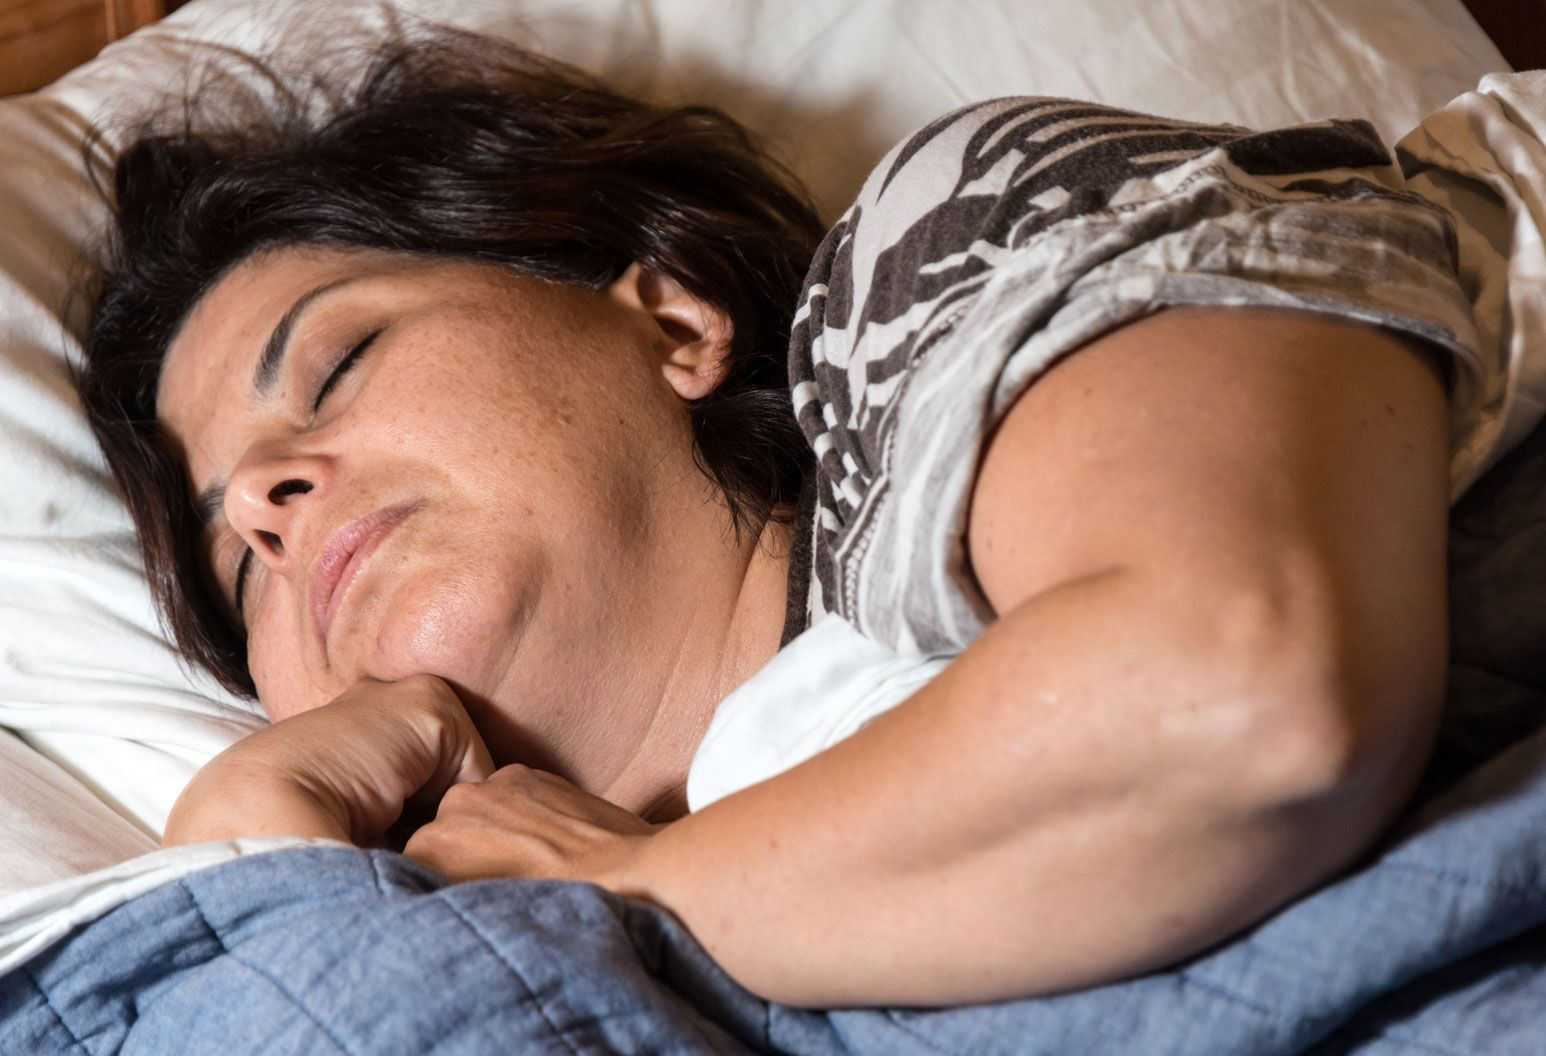 Woman with brown hair sleeping